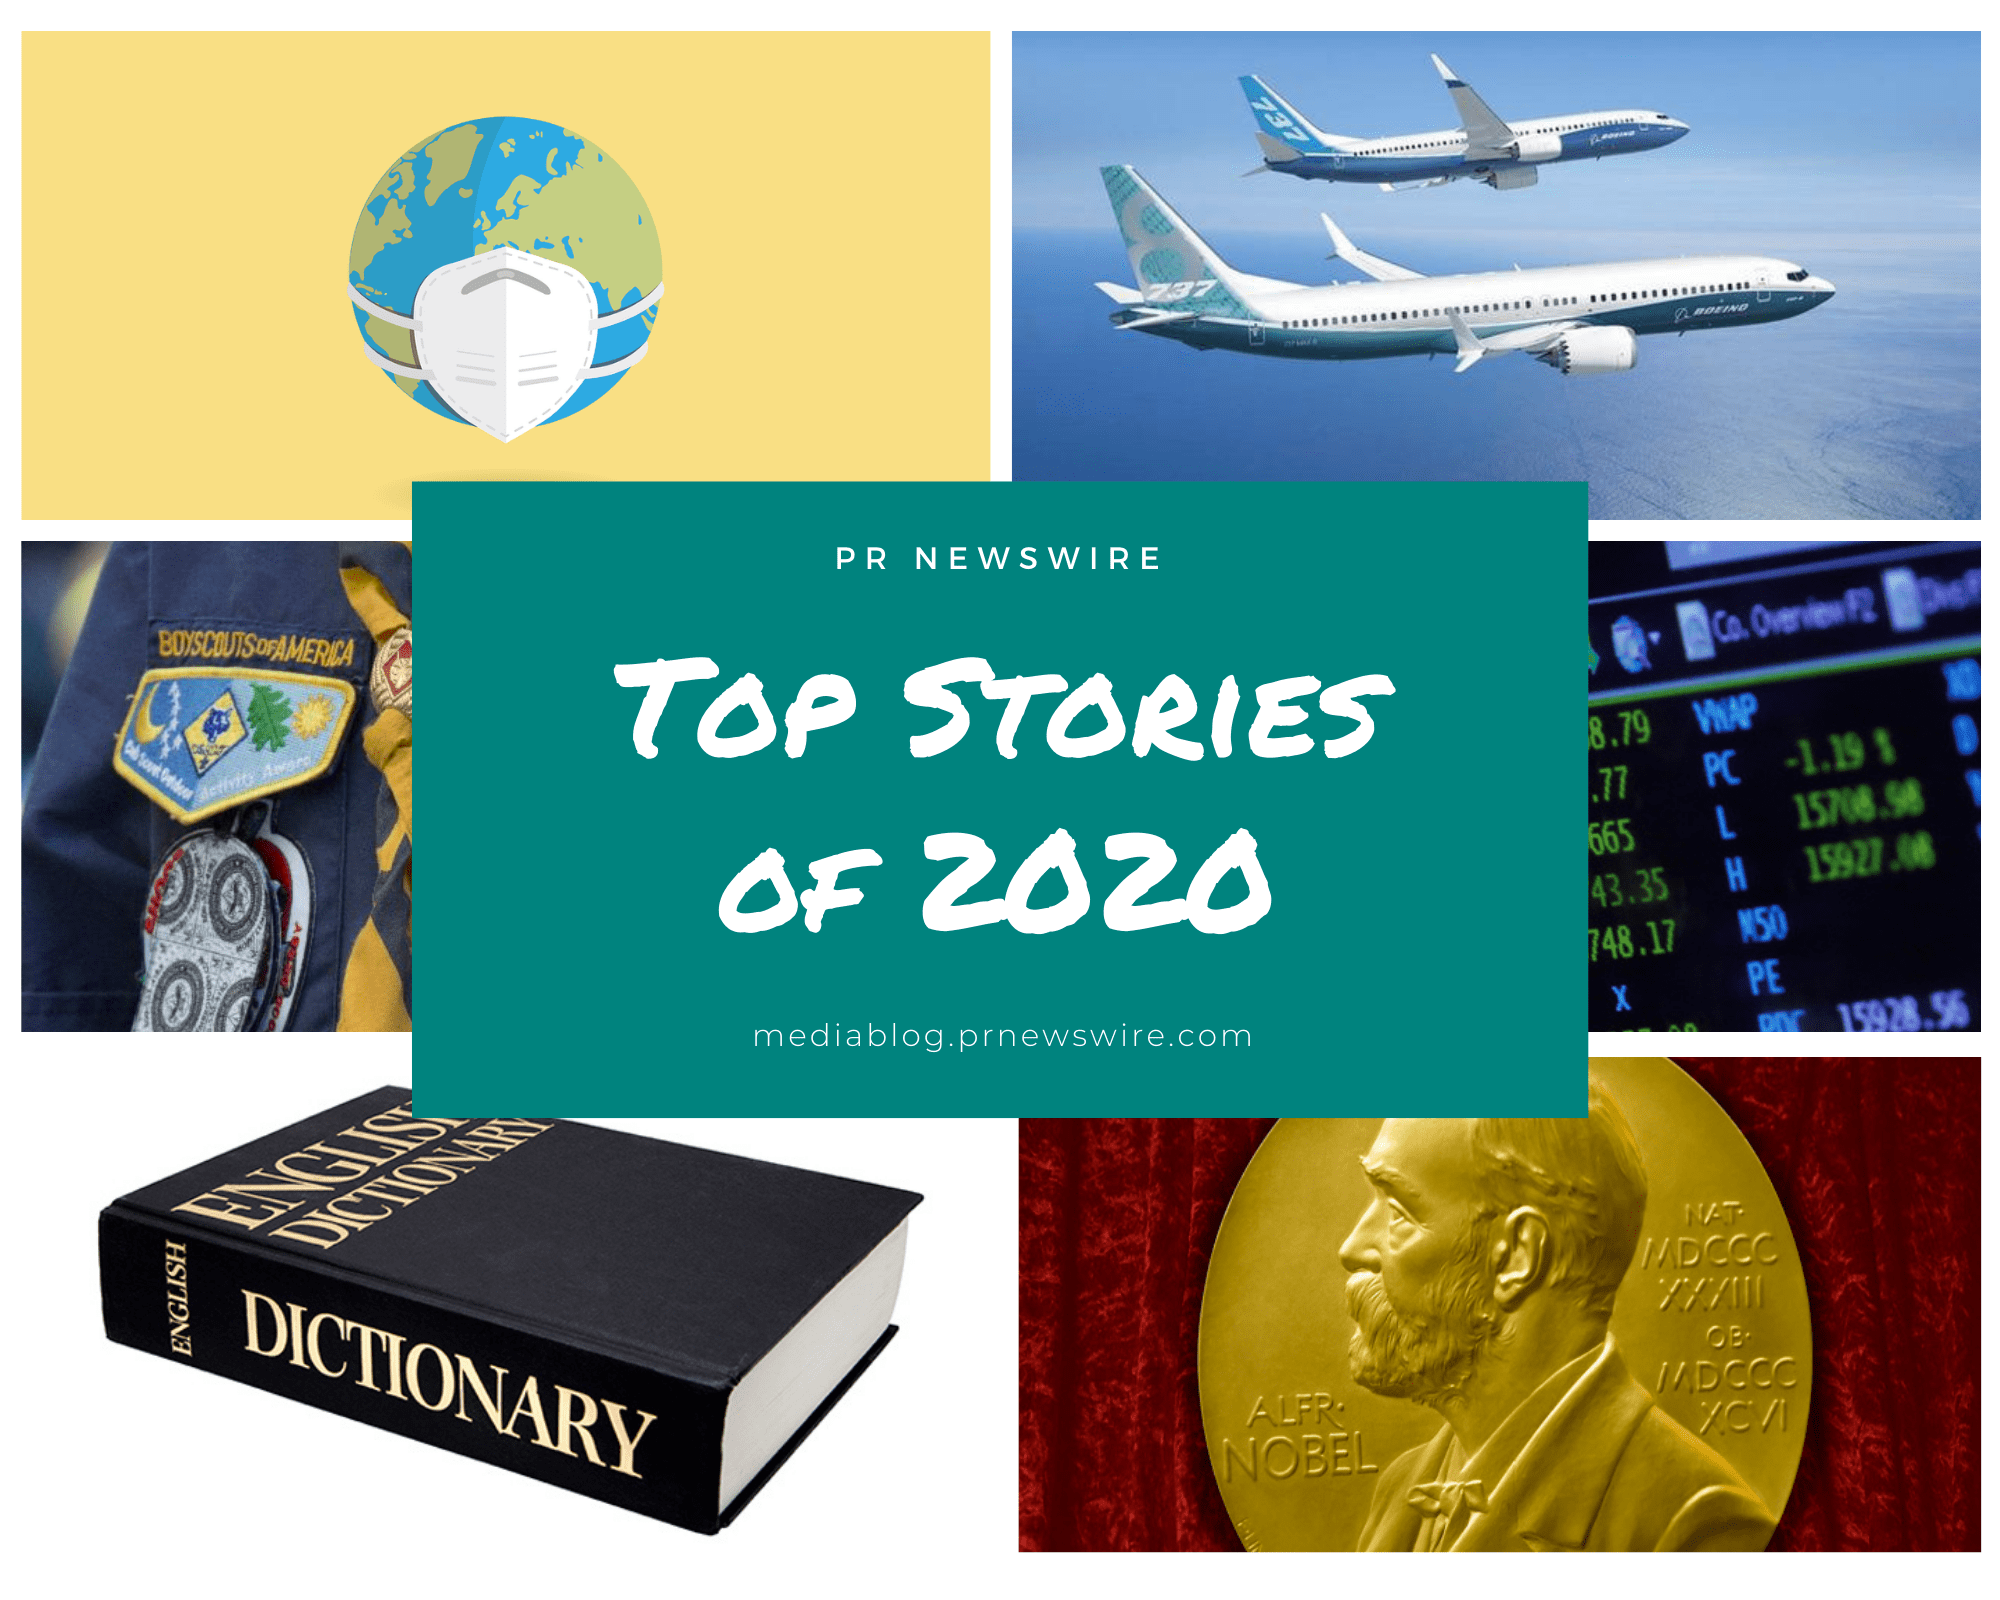 PR Newswire - Top Stories of 2020 - mediablog.prnewswire.com